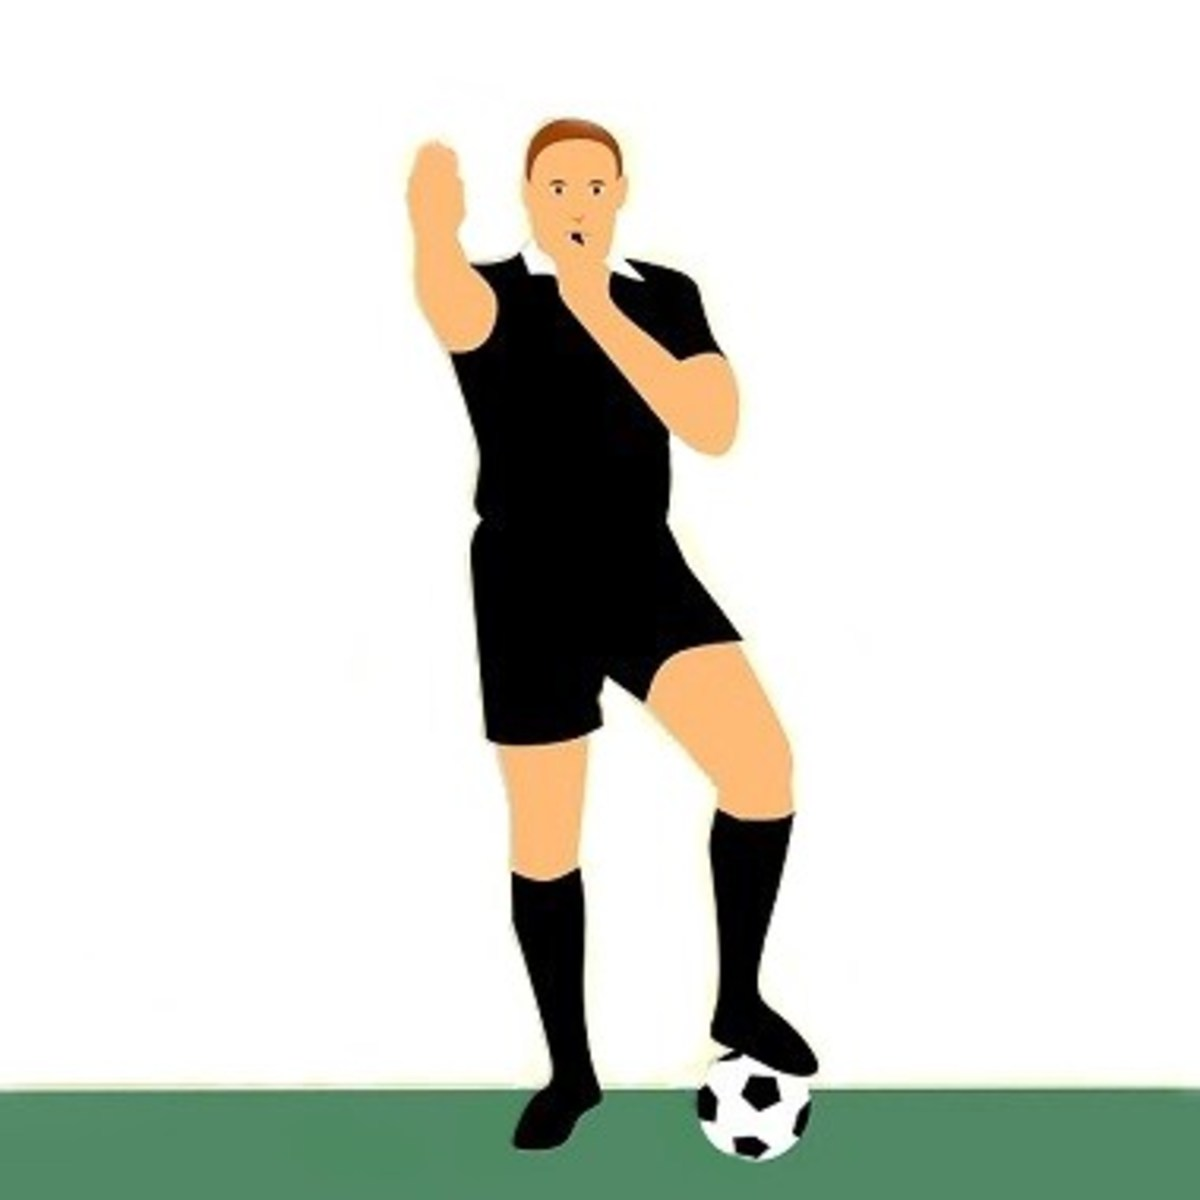 23 Football Referee Signals With Images and What They Mean